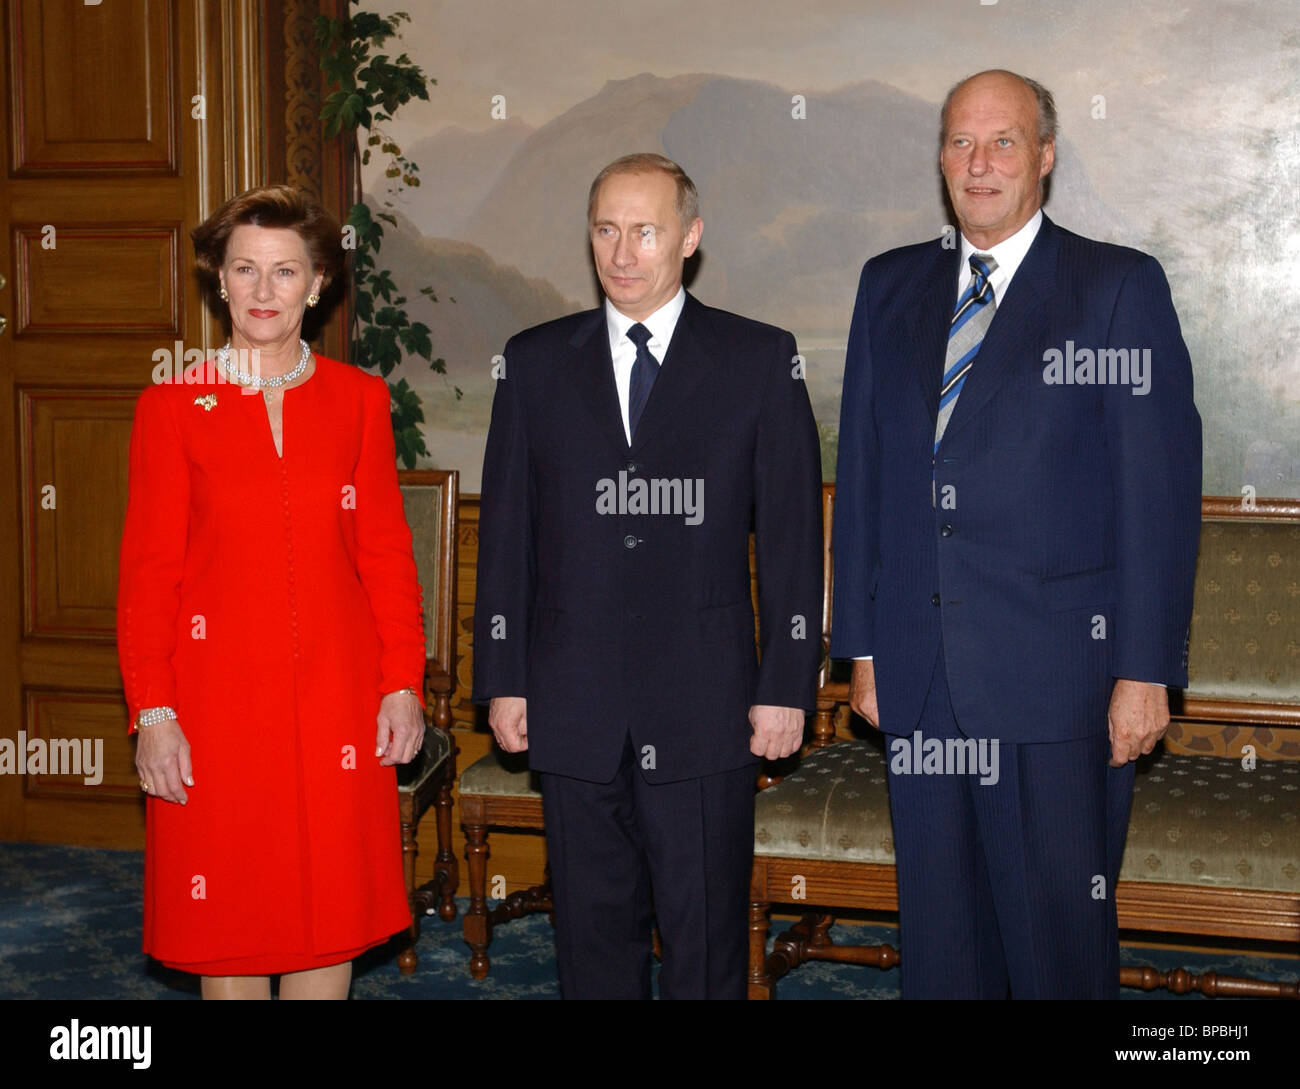 President Putin meets King Harald V and Queen Sonja of Norway - Stock Image